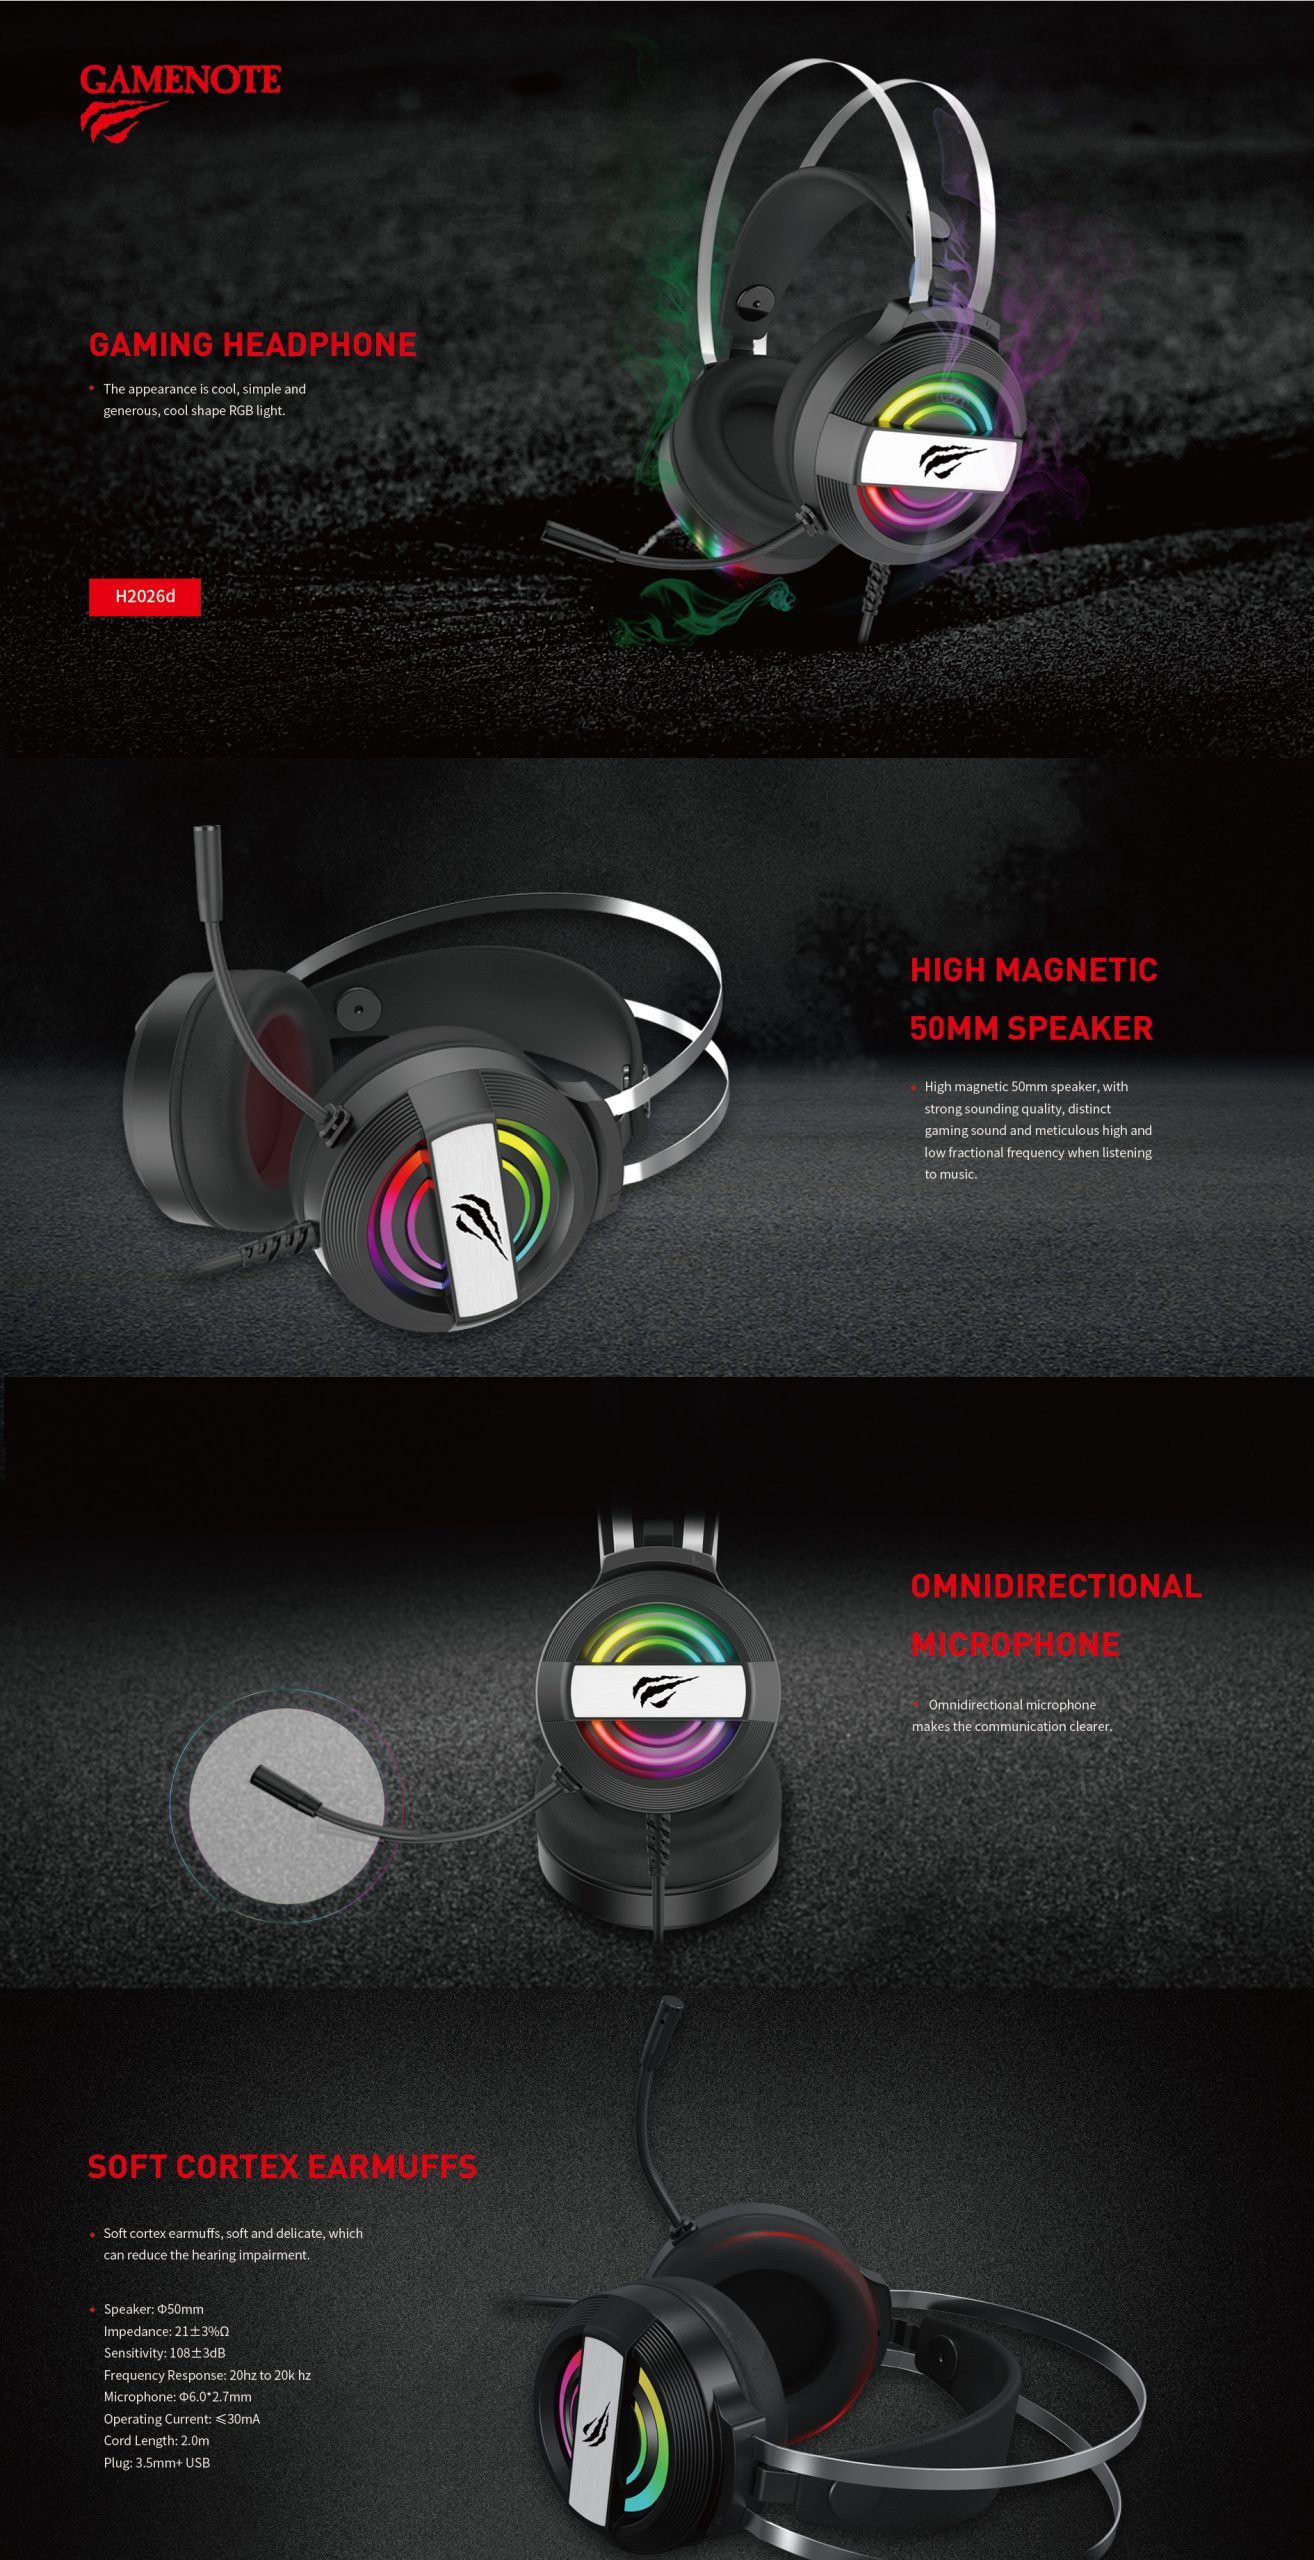 HAVIT head-band RGB-gaming headphone wired headset 3.5mm with microphone H2026d